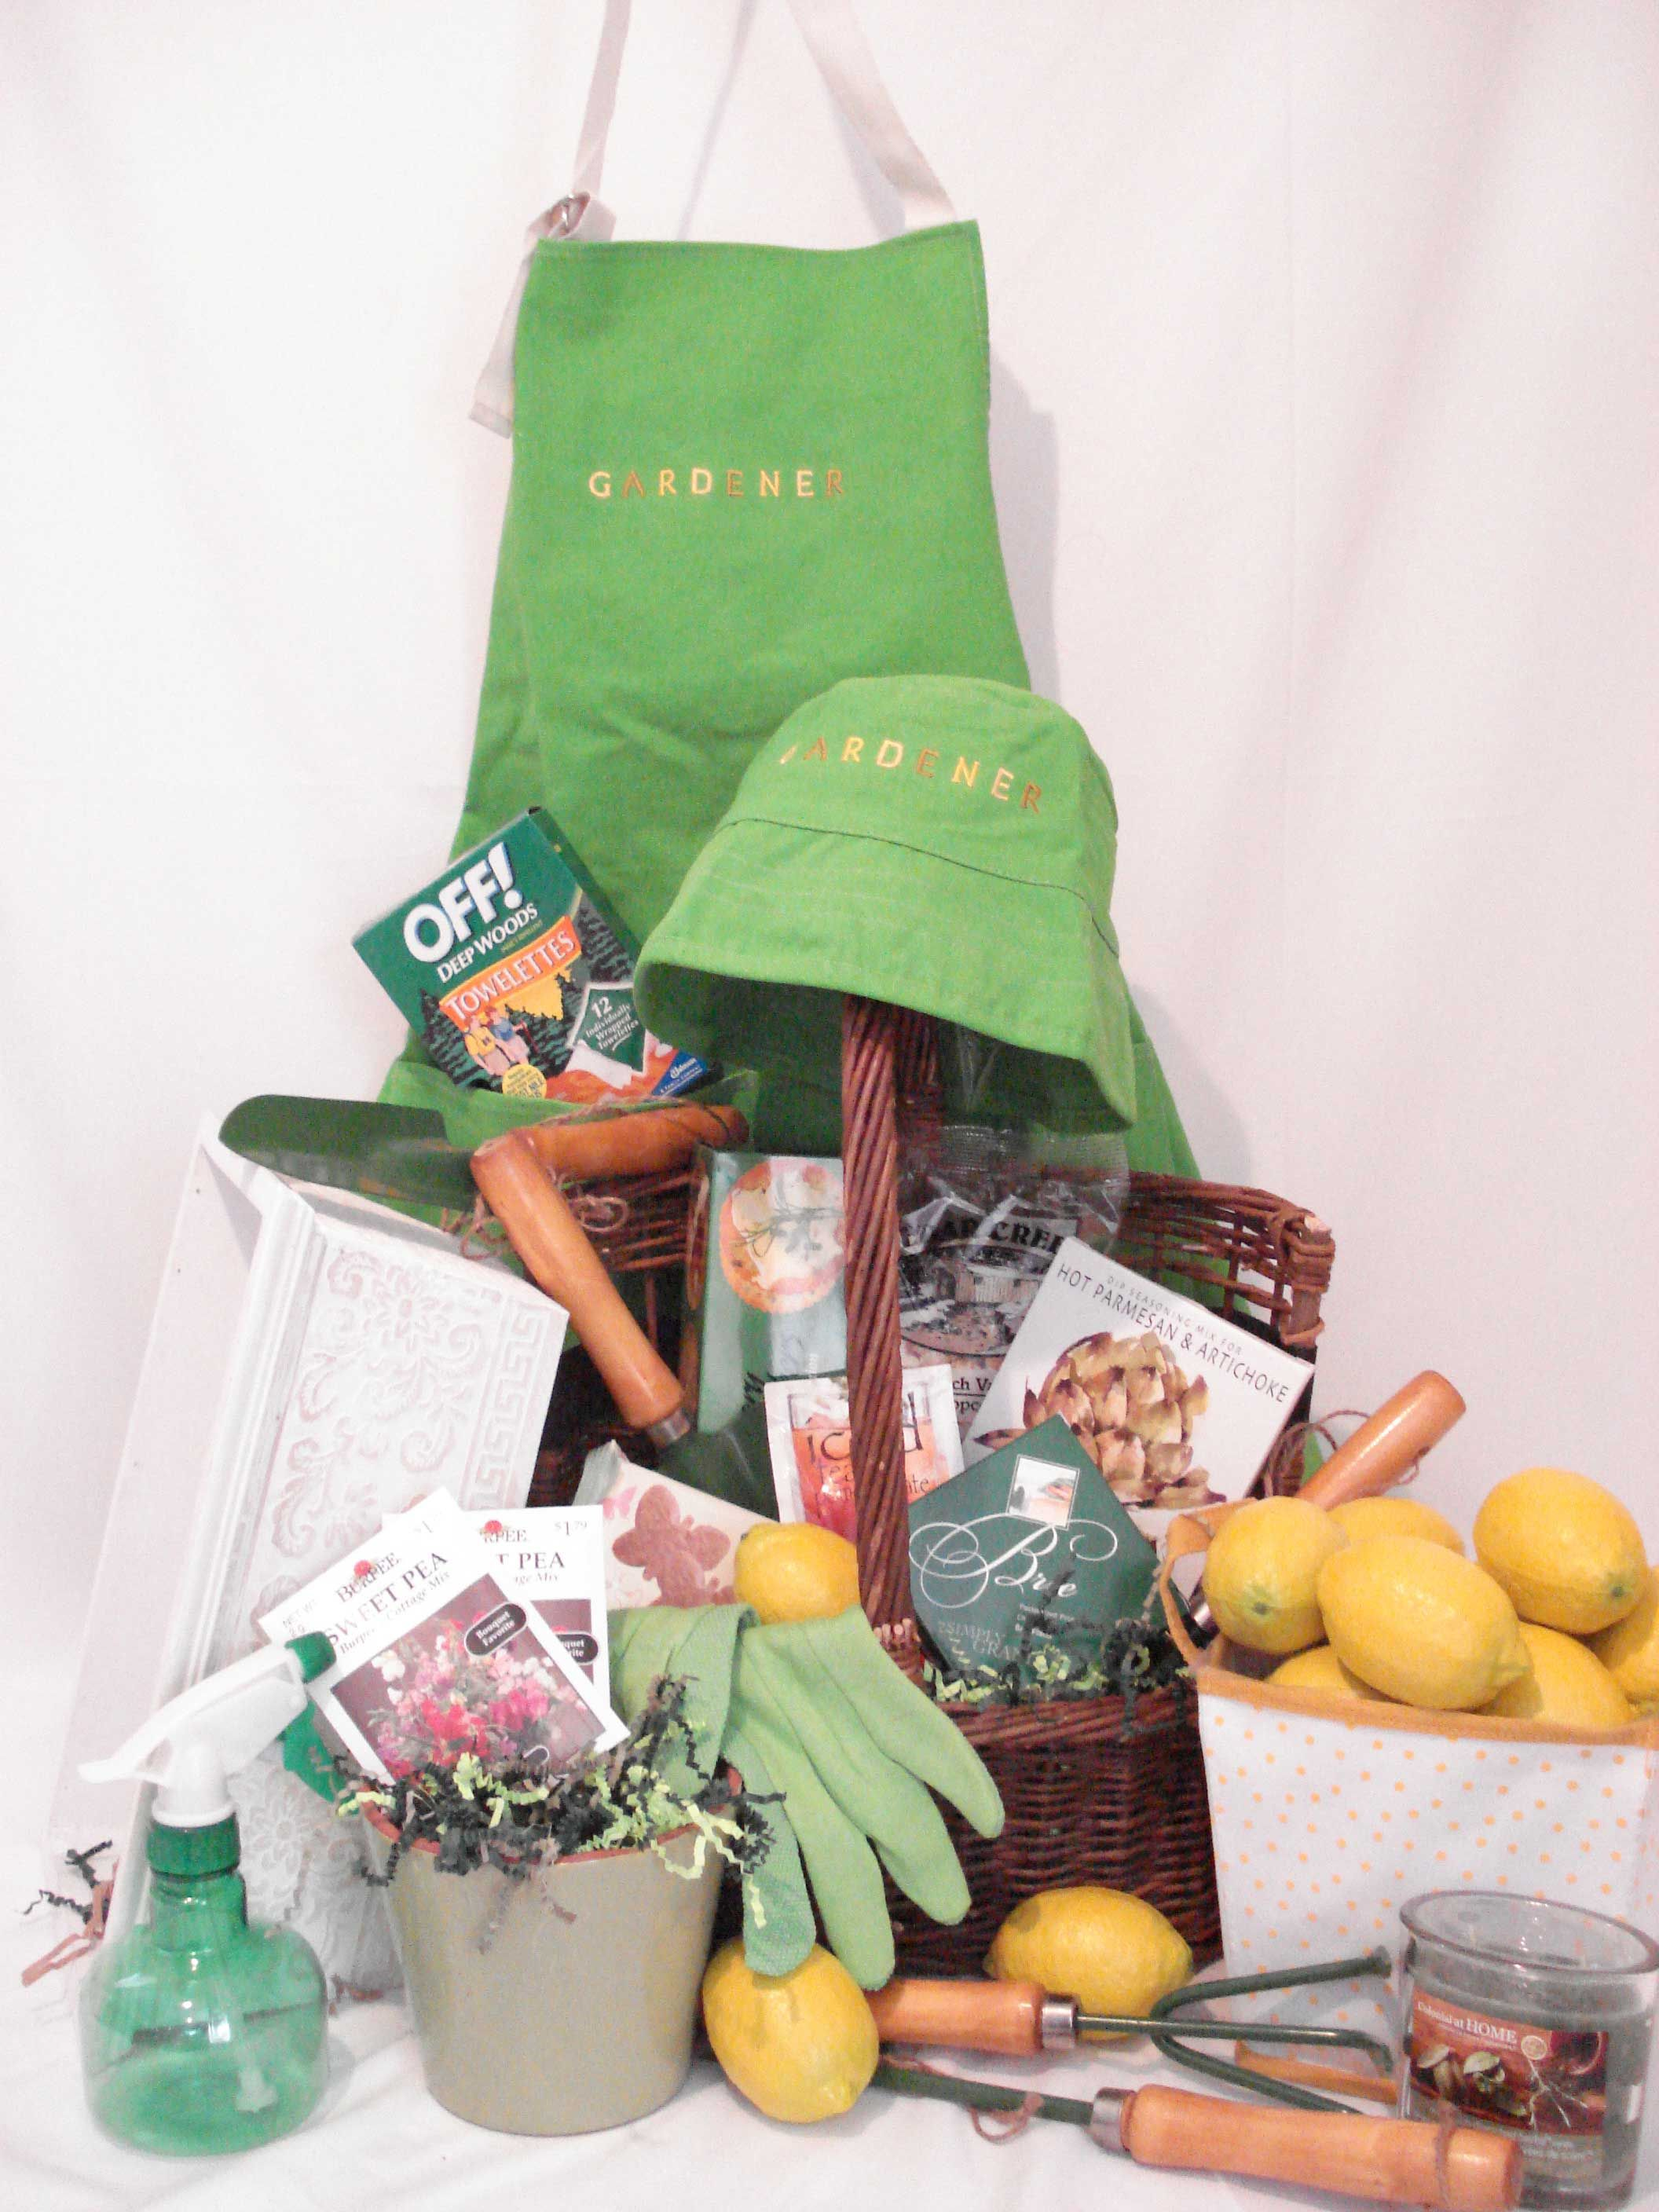 1000 images about Gift Baskets To Make on Pinterest Gardens